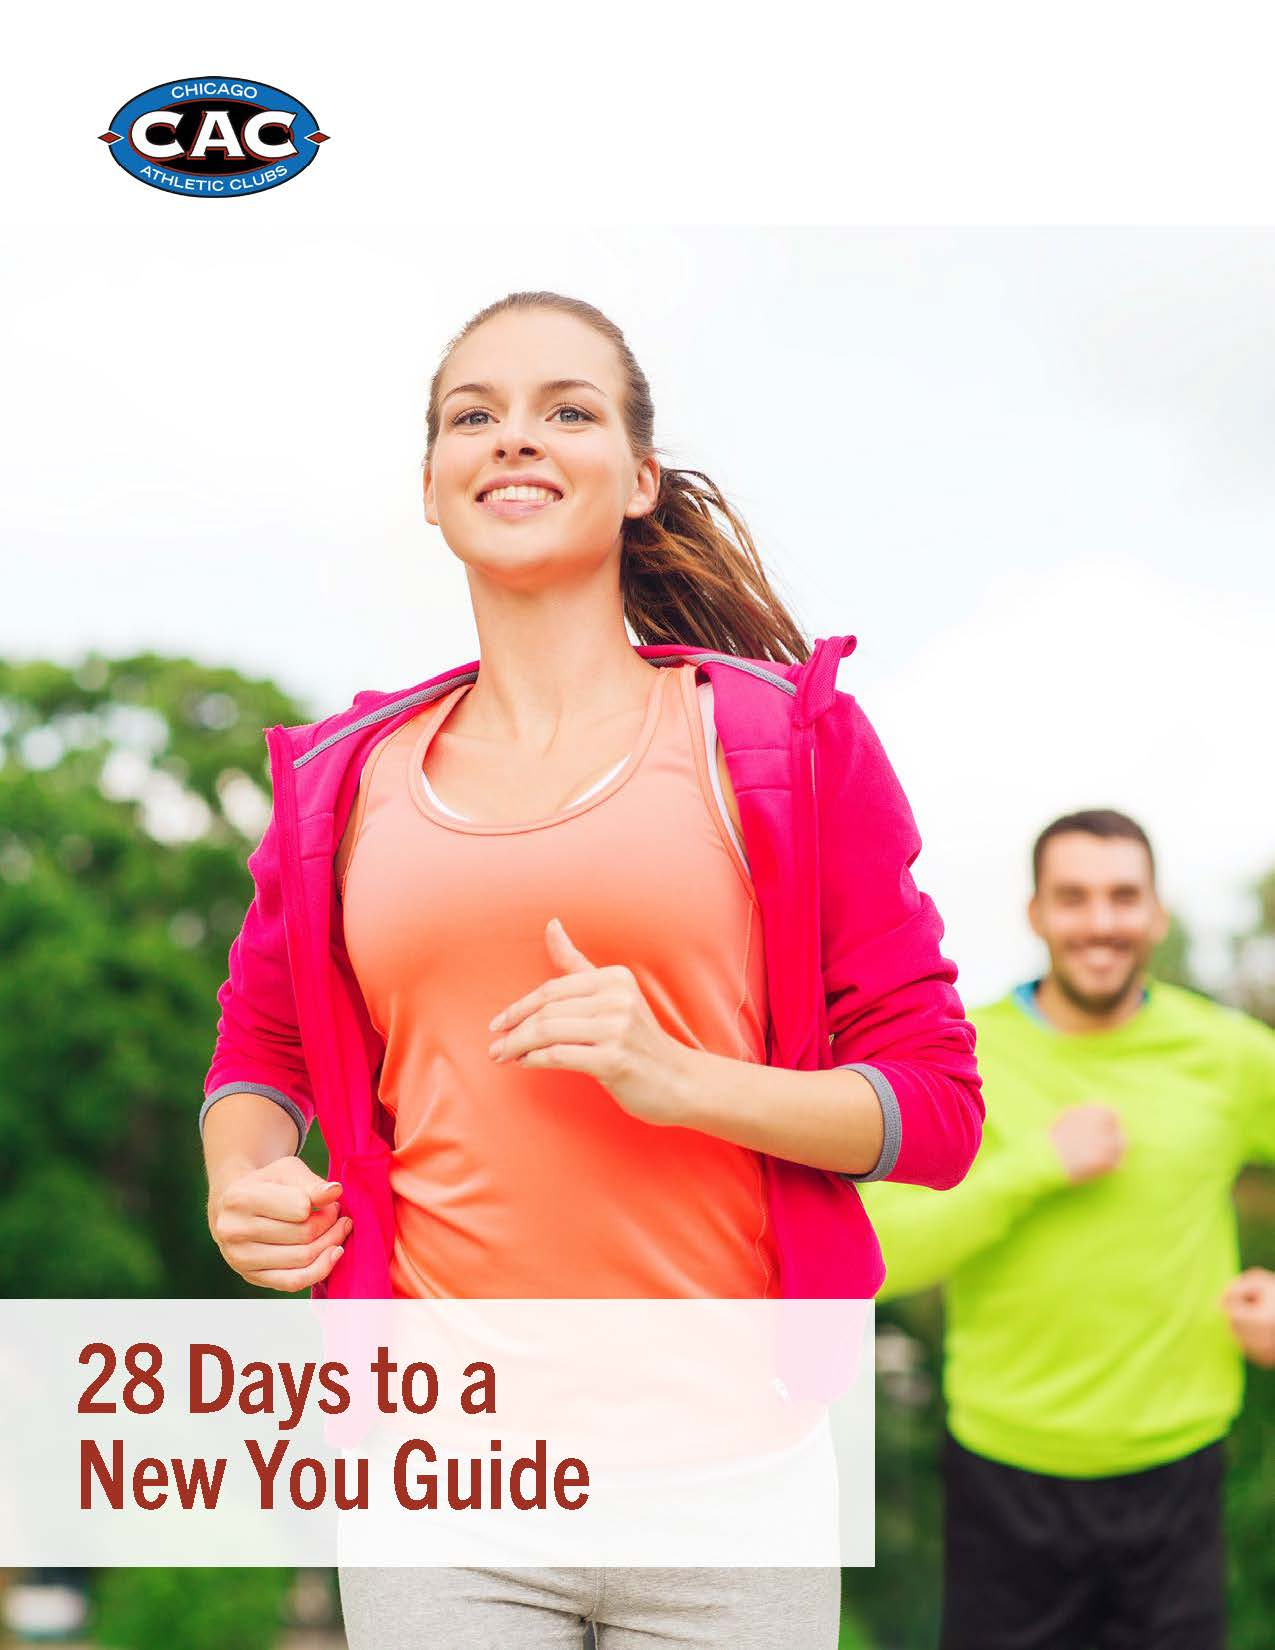 ebook_28DaystoaNewYouGuide-Cover.jpg